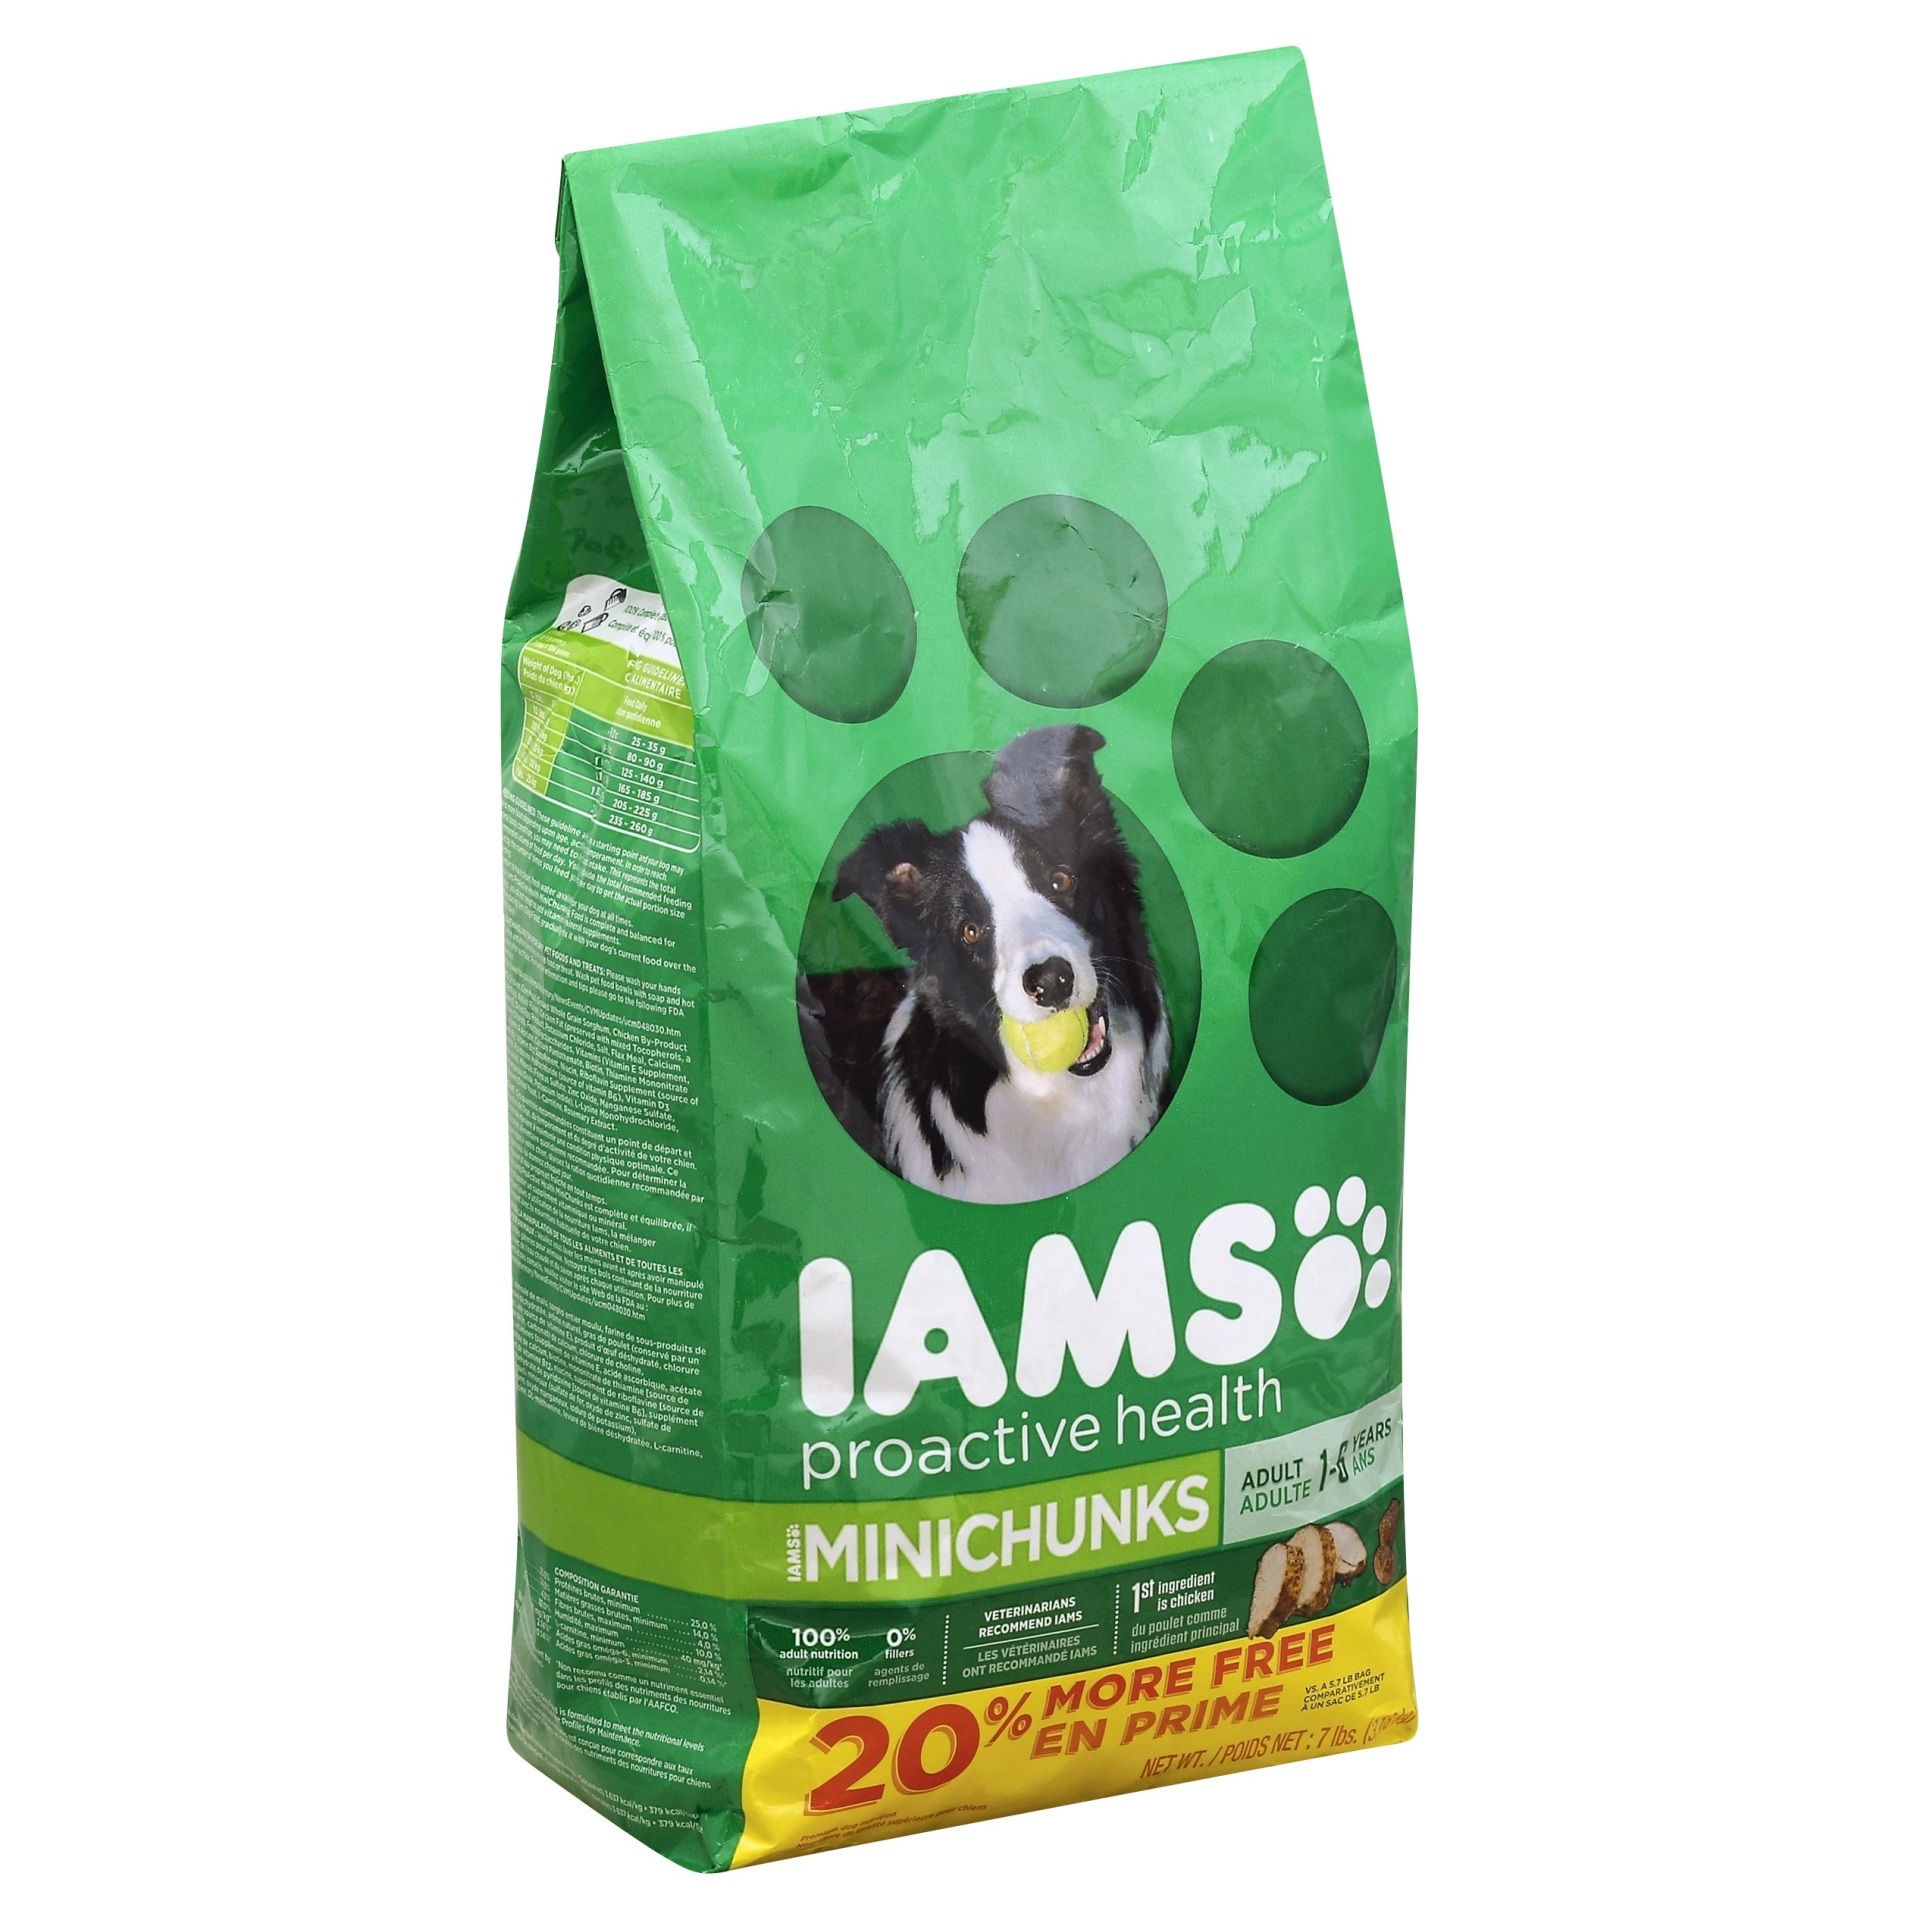 slide 1 of 9, IAMS Proactive Health Adult MiniChunks - Dry Dog Food,